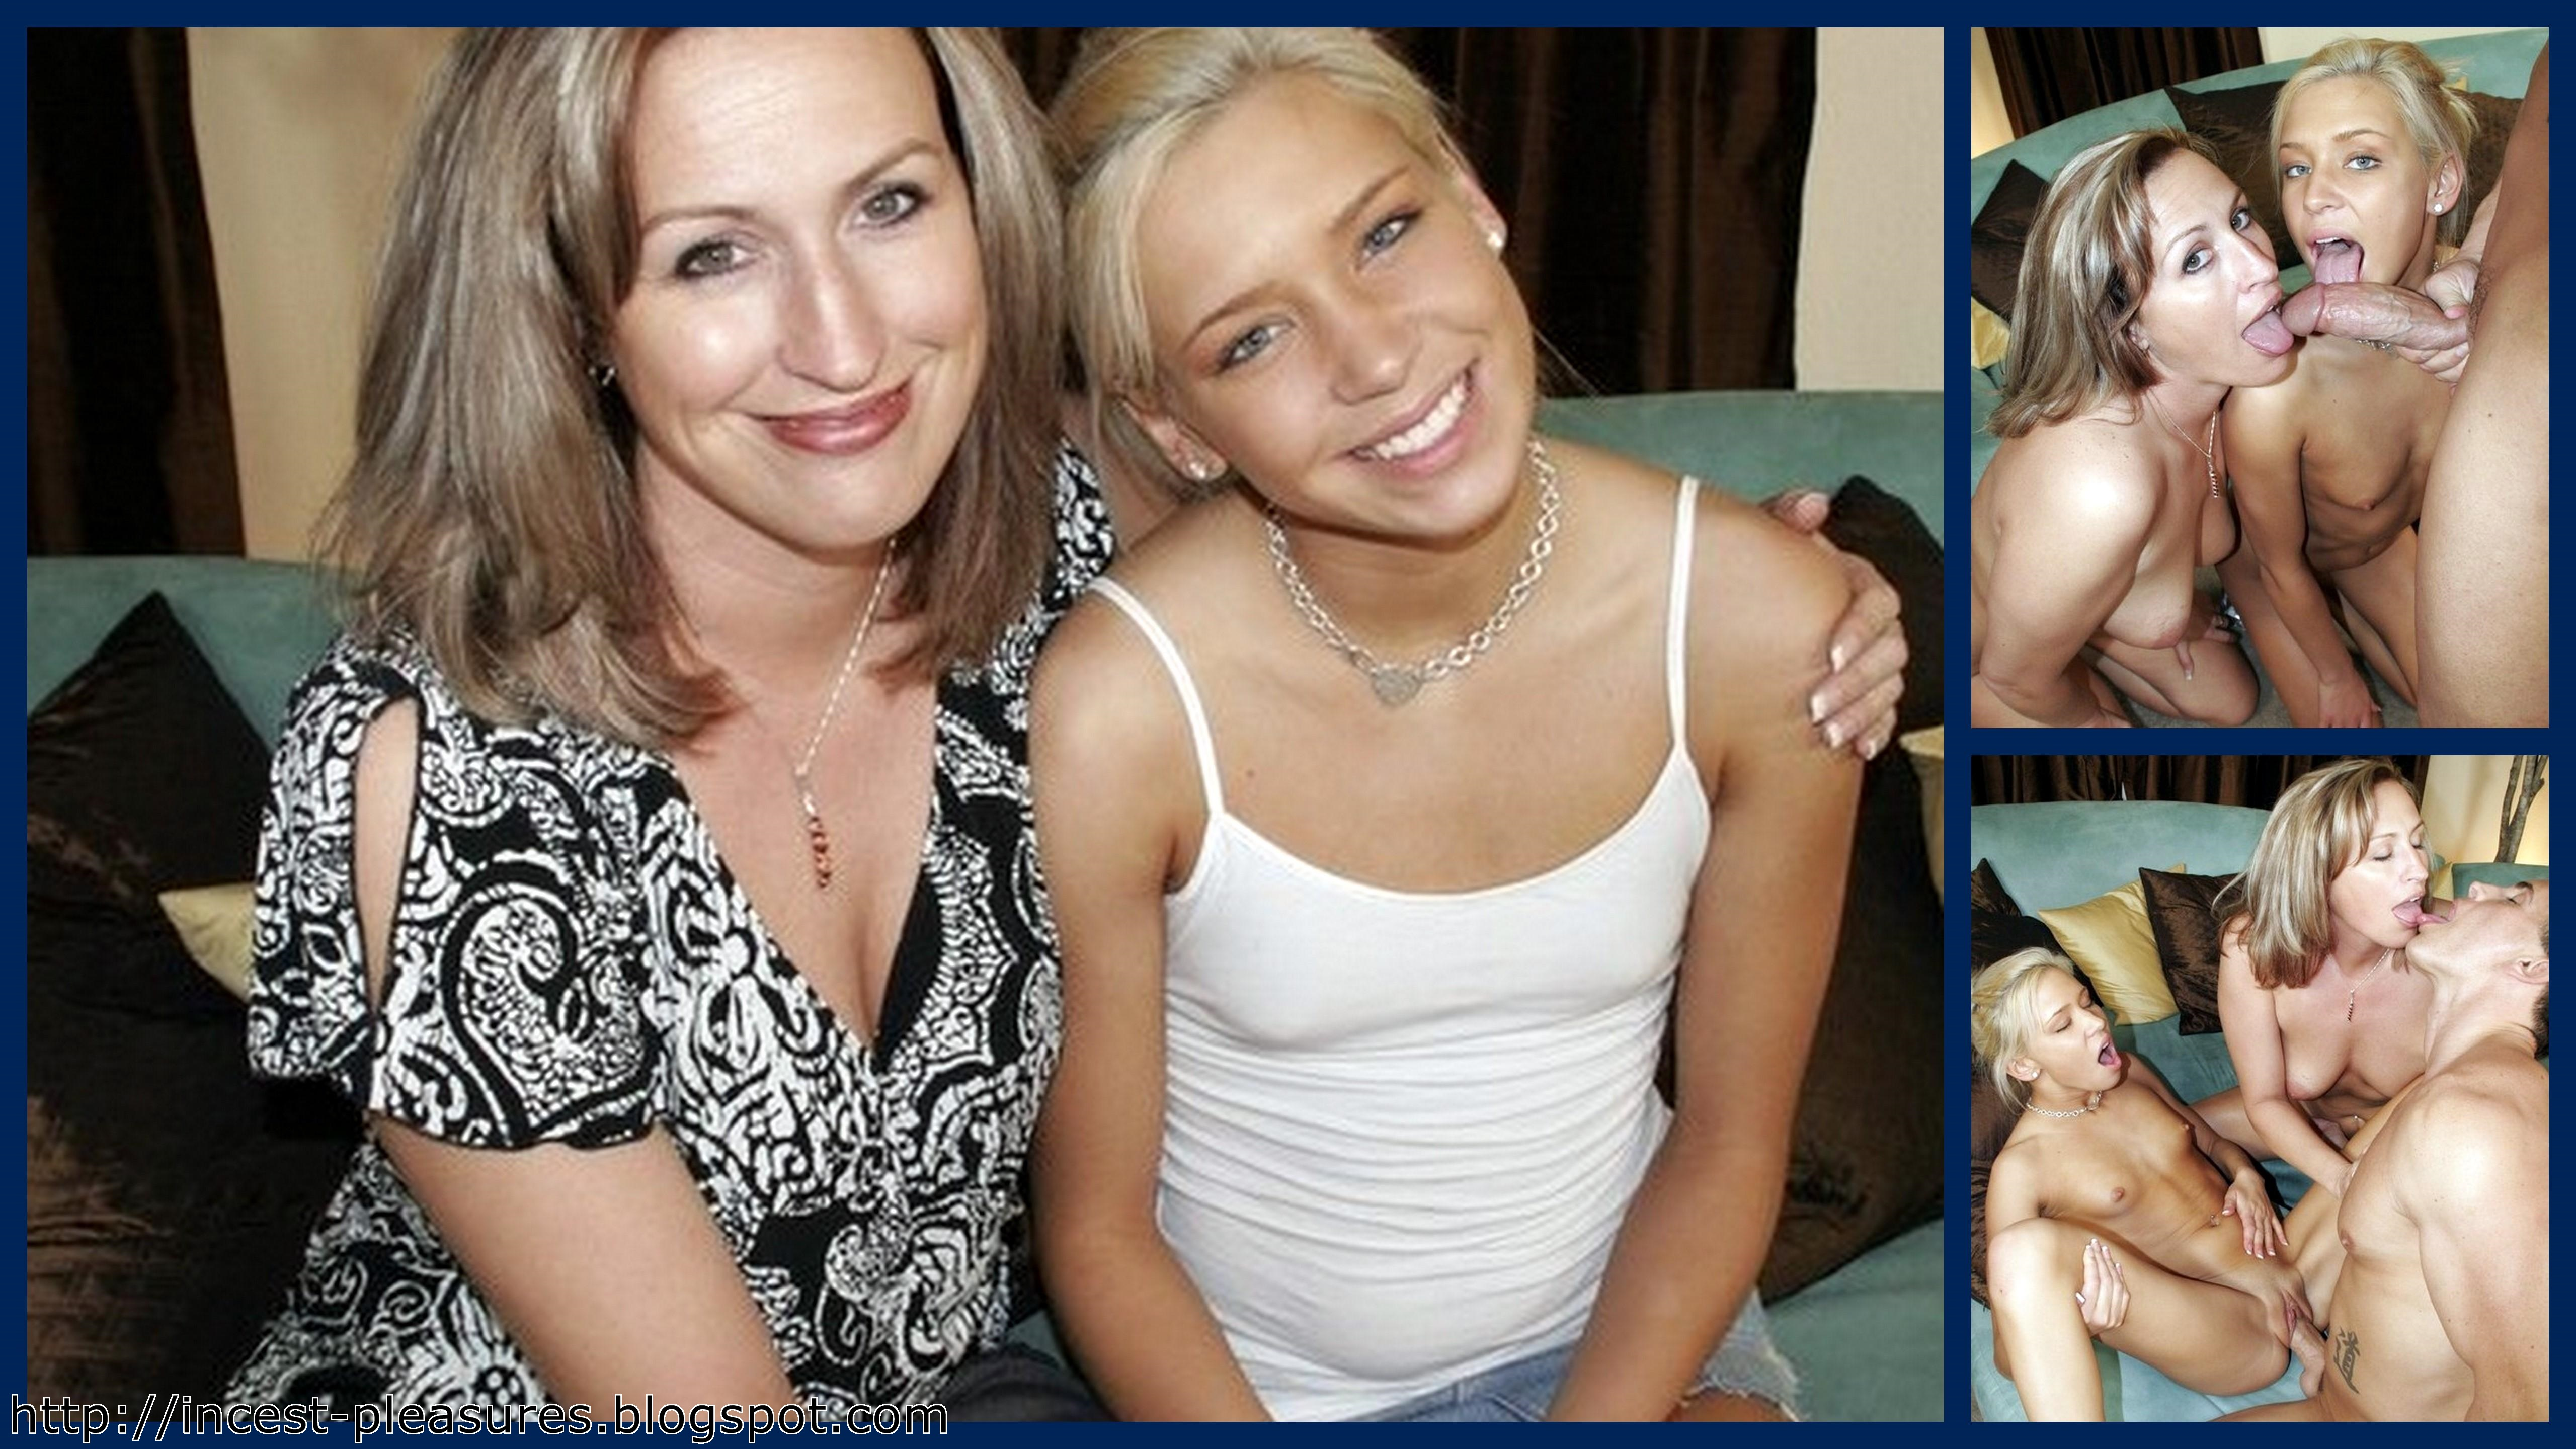 Right! nude moms and daughters